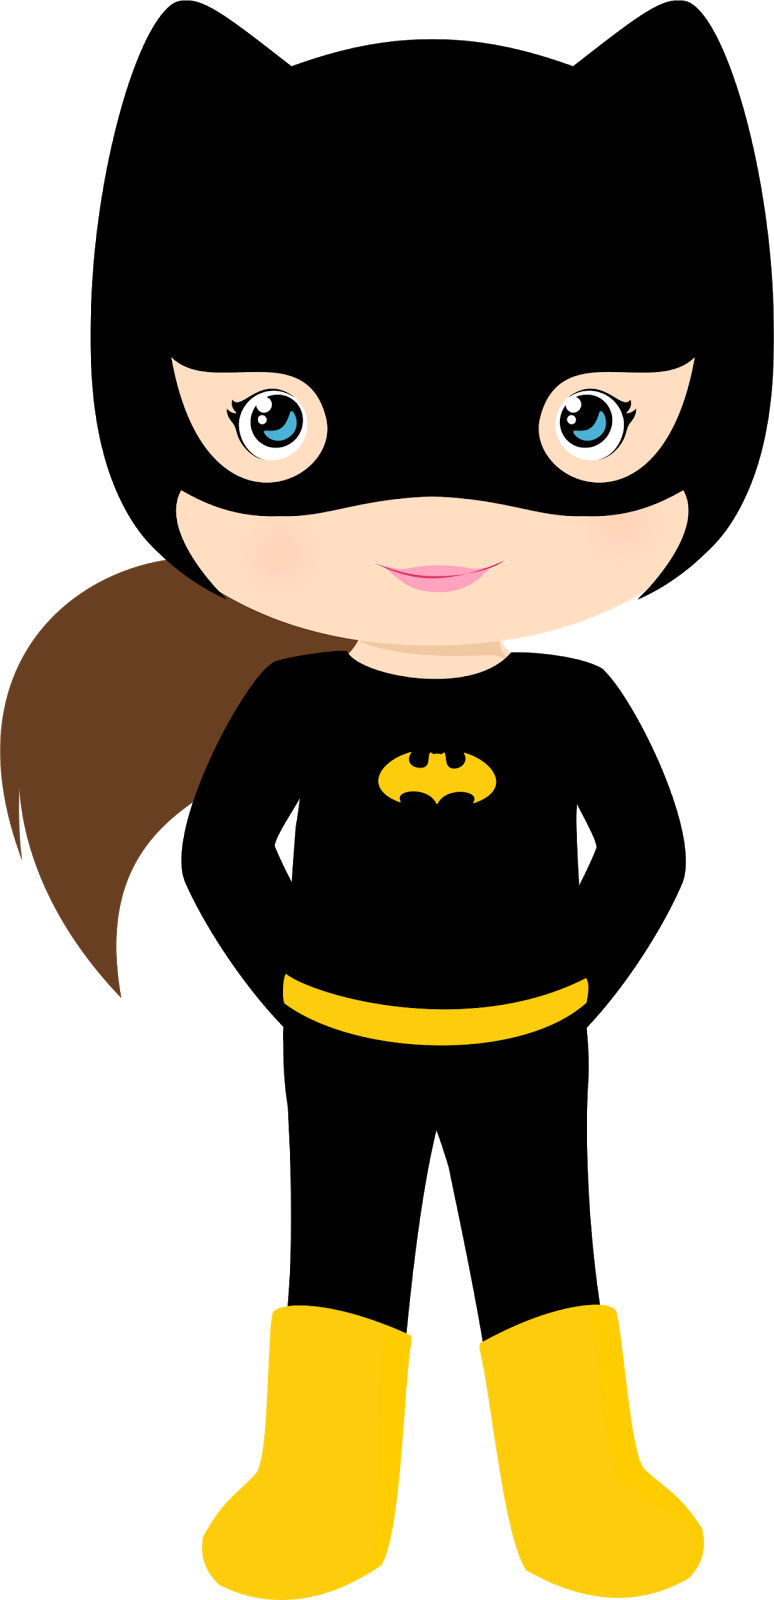 Lego at getdrawings com. Youtube clipart batman